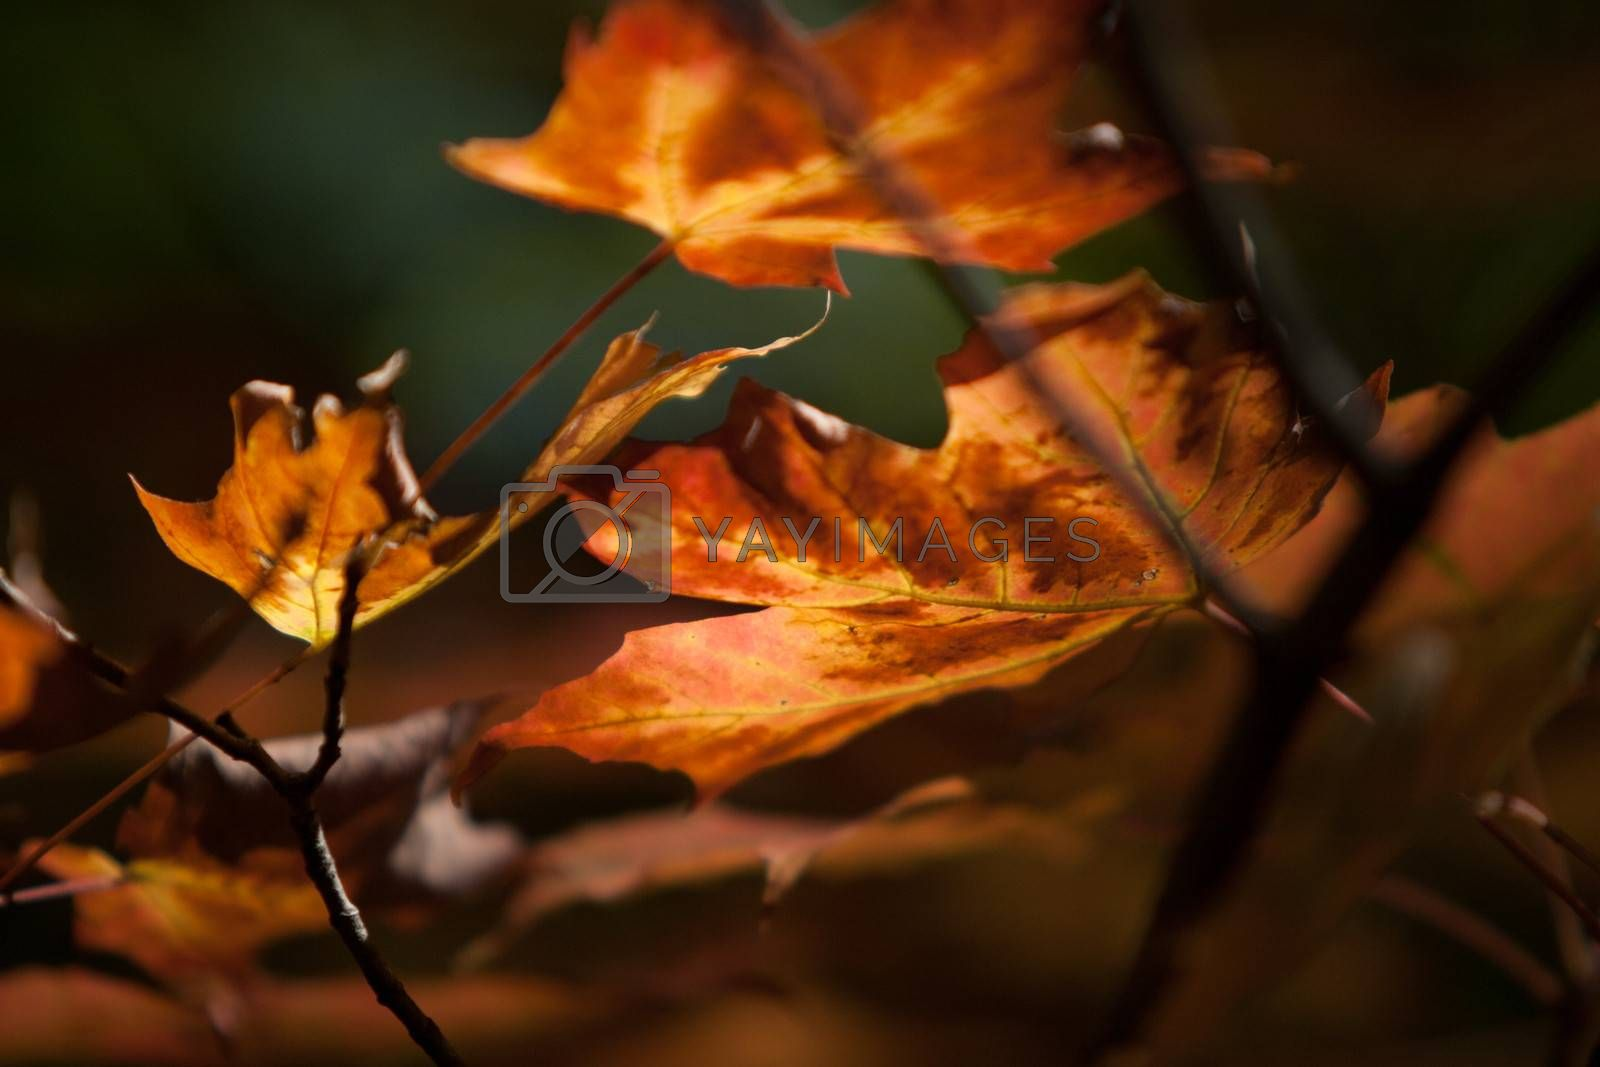 maples leaves in autumn